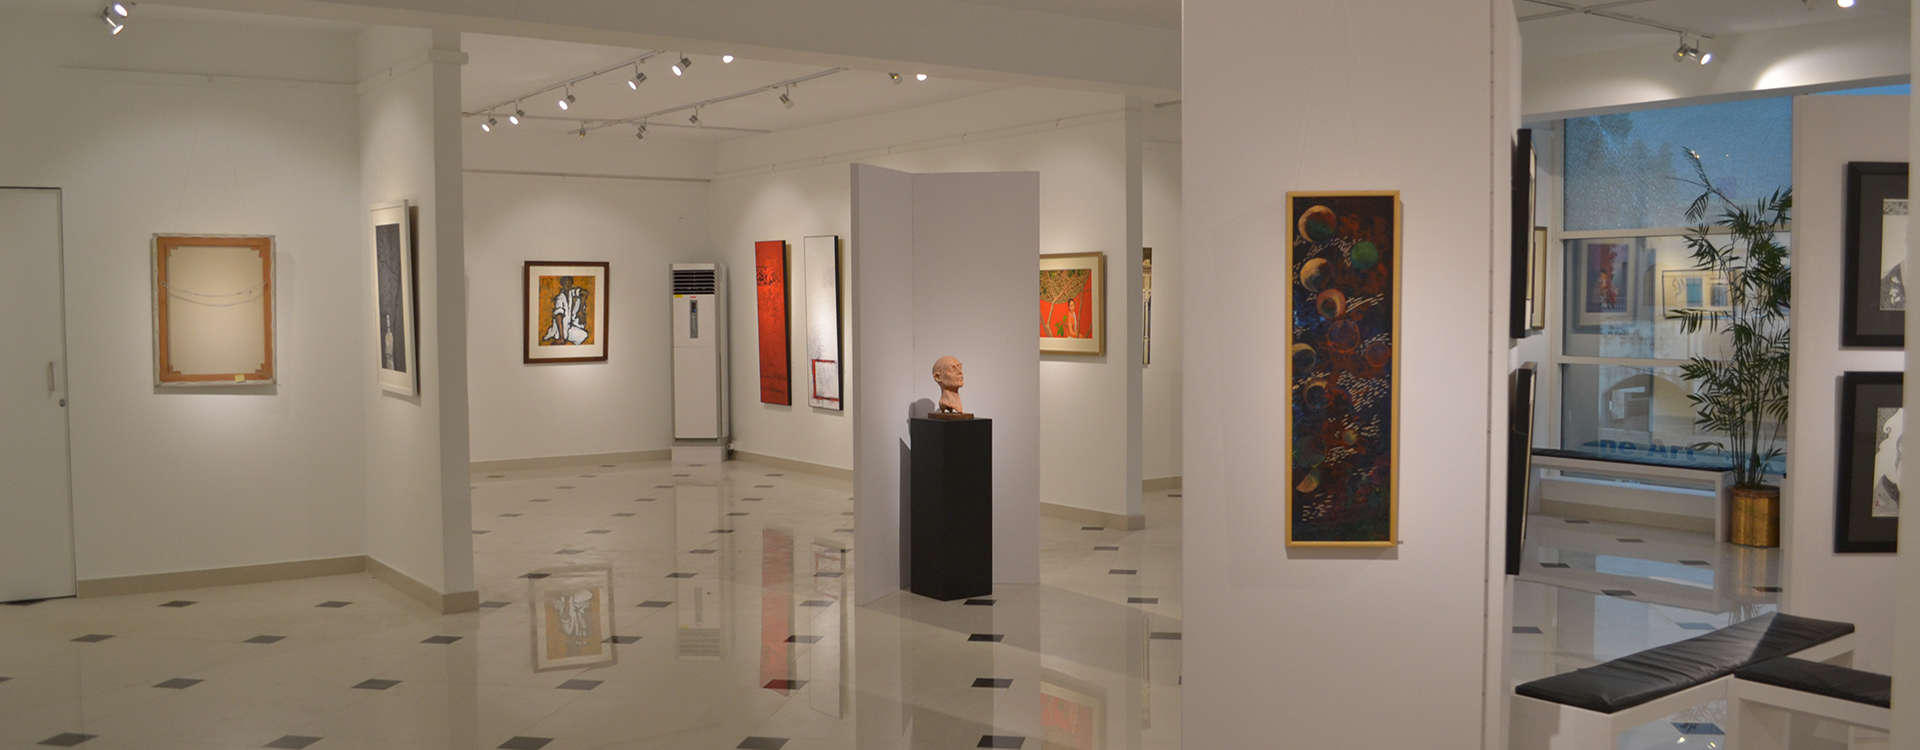 Pakistani Art Gallery 3